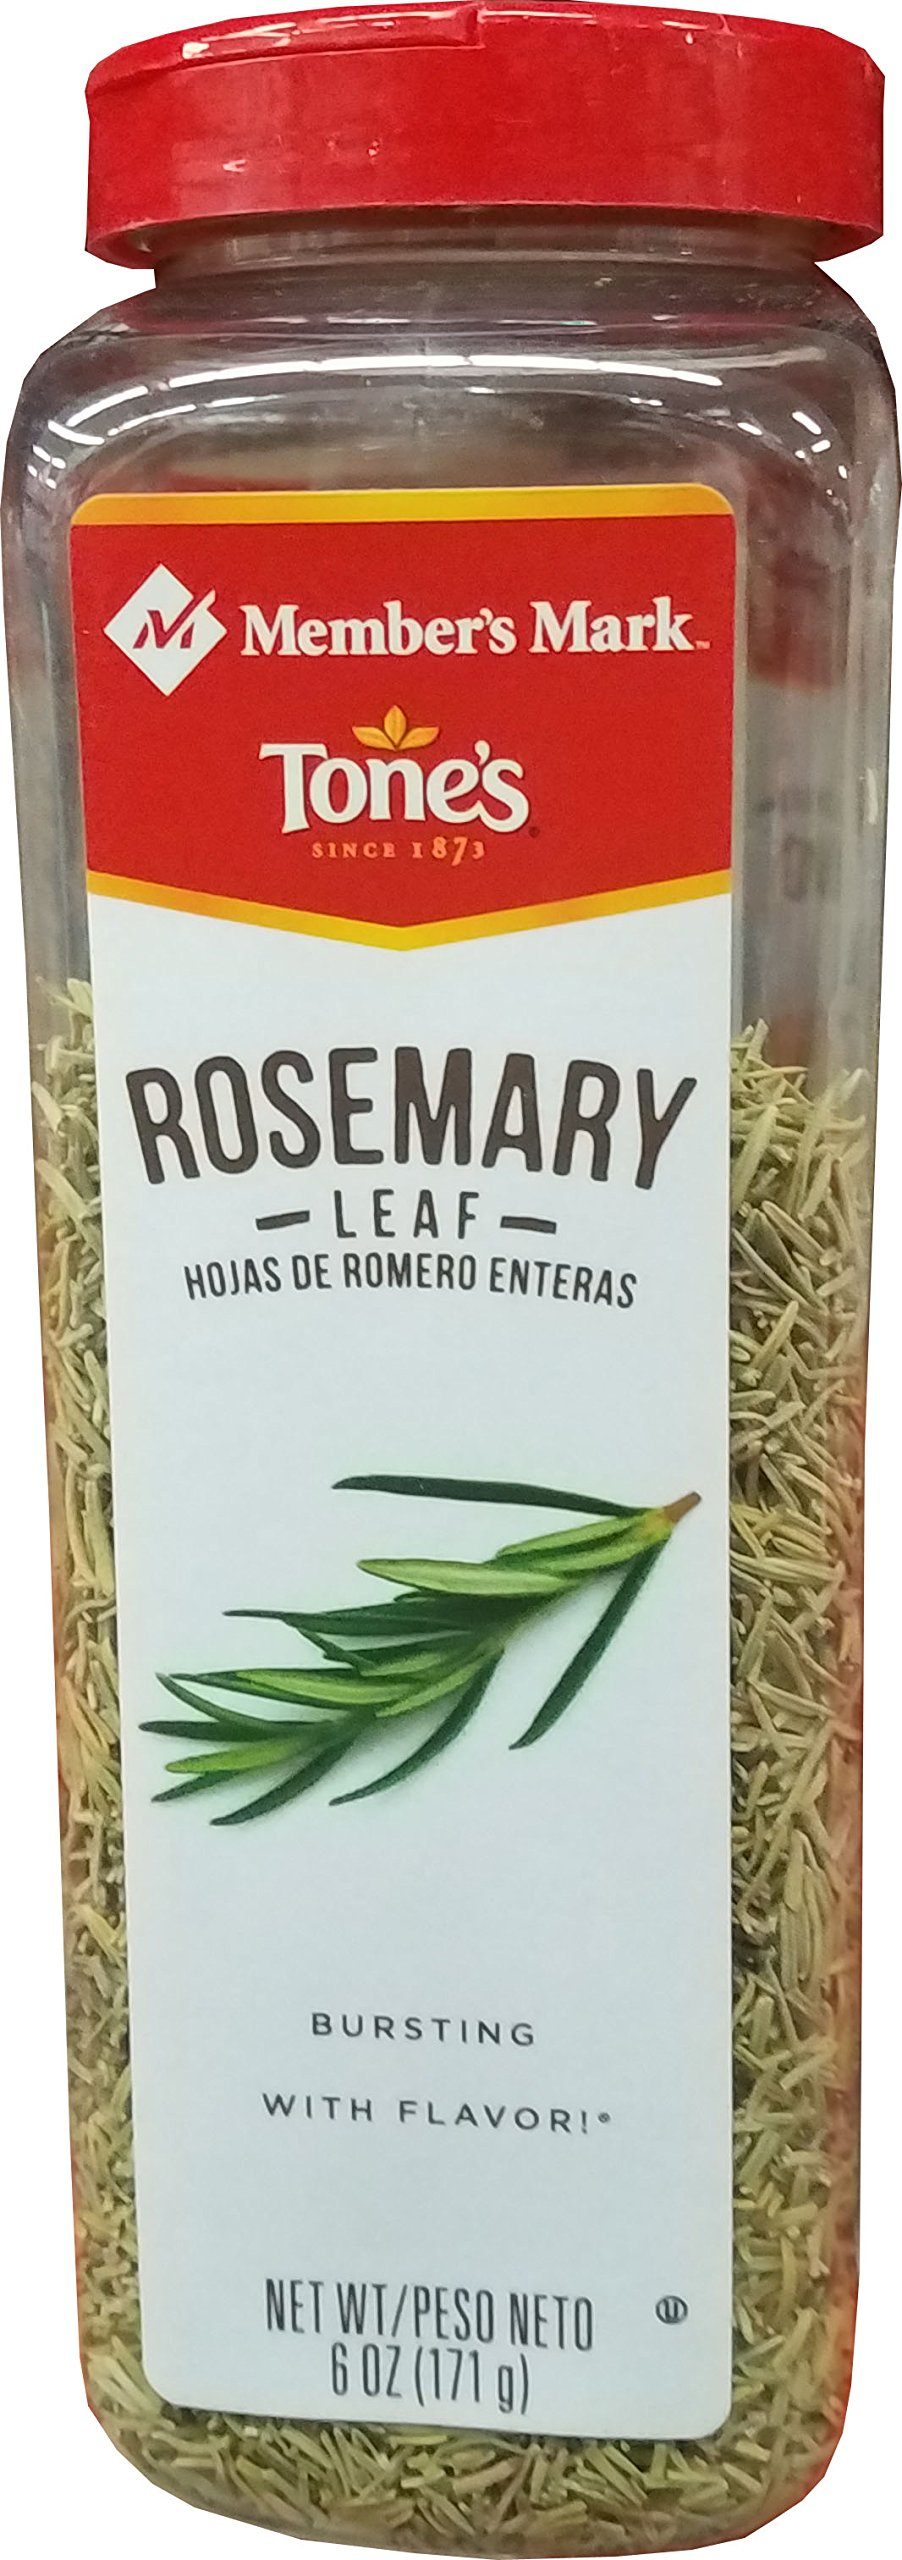 Member's Mark Rosemary Leaves by Tone's, 6 Ounce